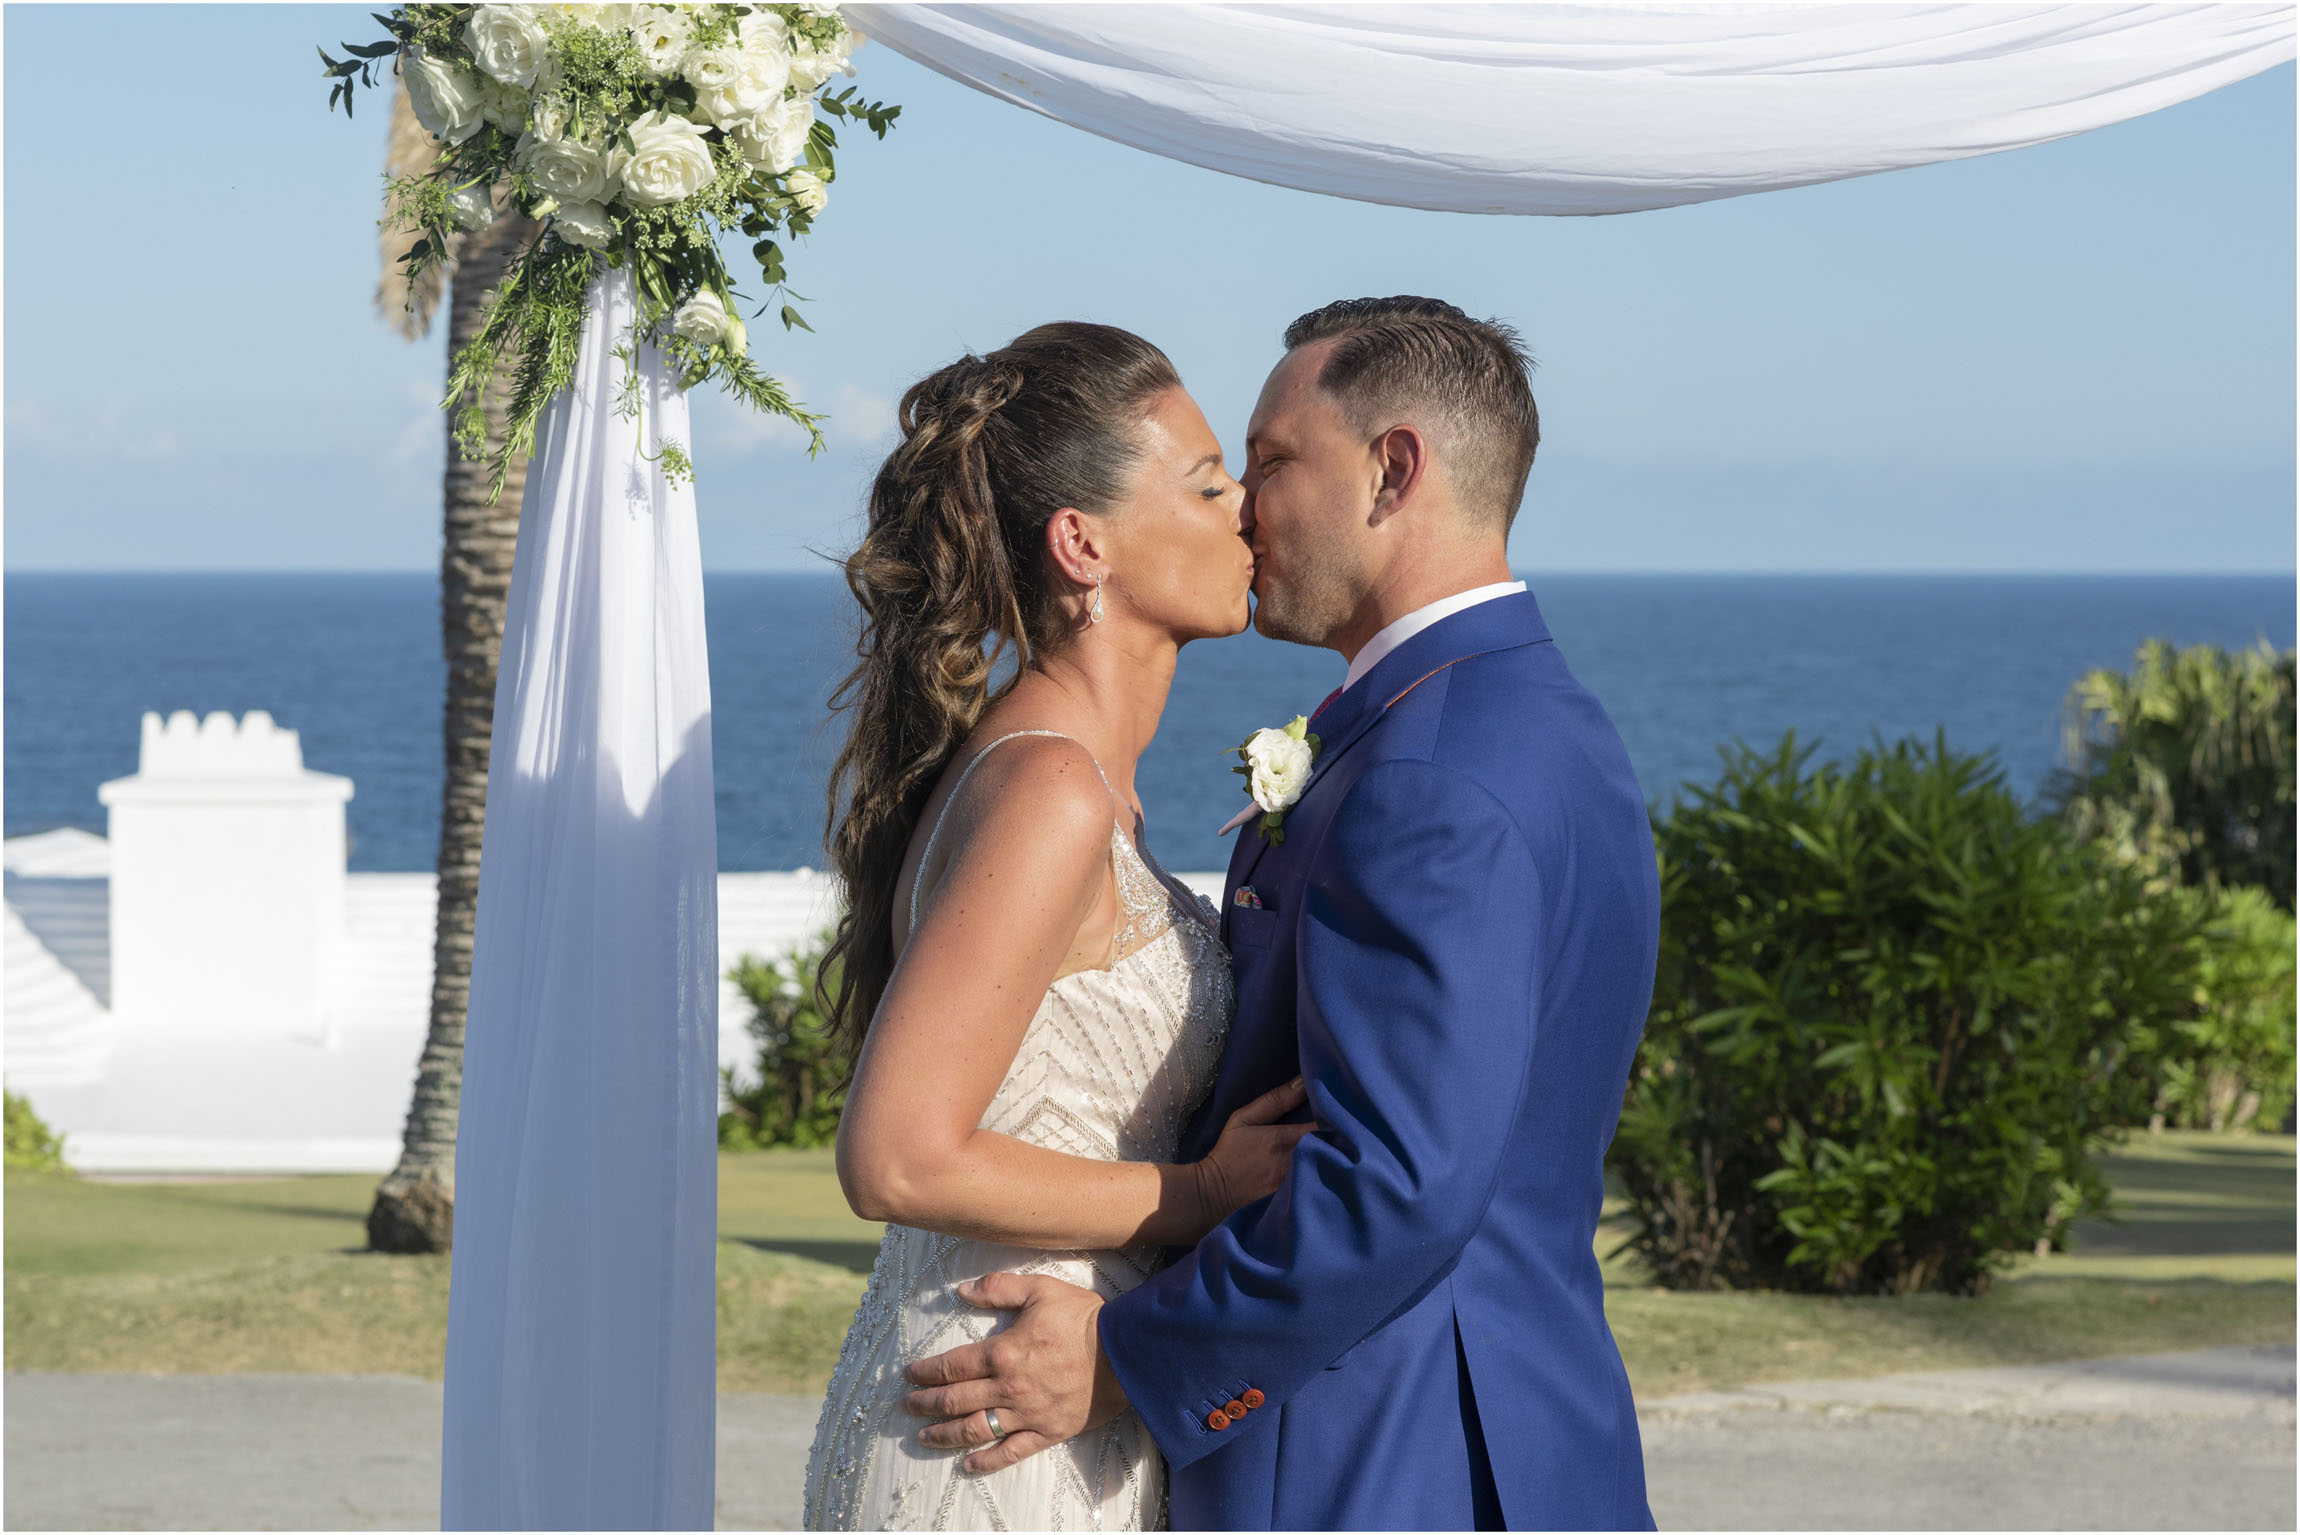 ©FianderFoto_Catherine_Kenny_Coral Beach Wedding_167.jpg